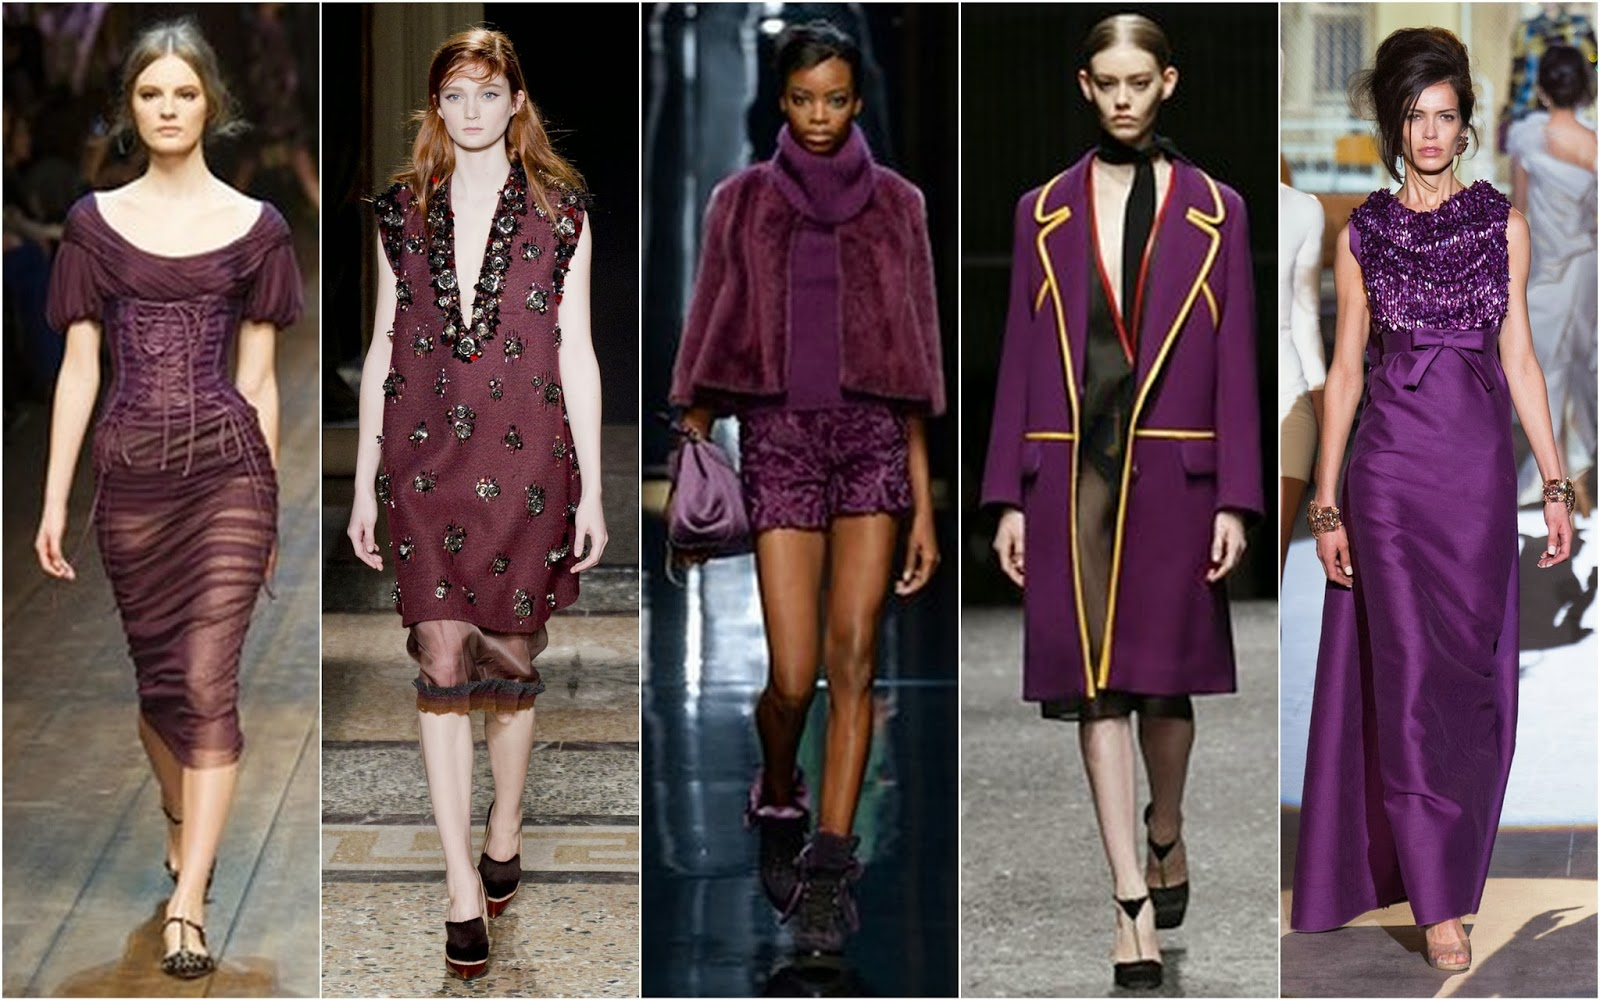 Communication on this topic: Main trends Fall-Winter 2014-2015, main-trends-fall-winter-2014-2015/